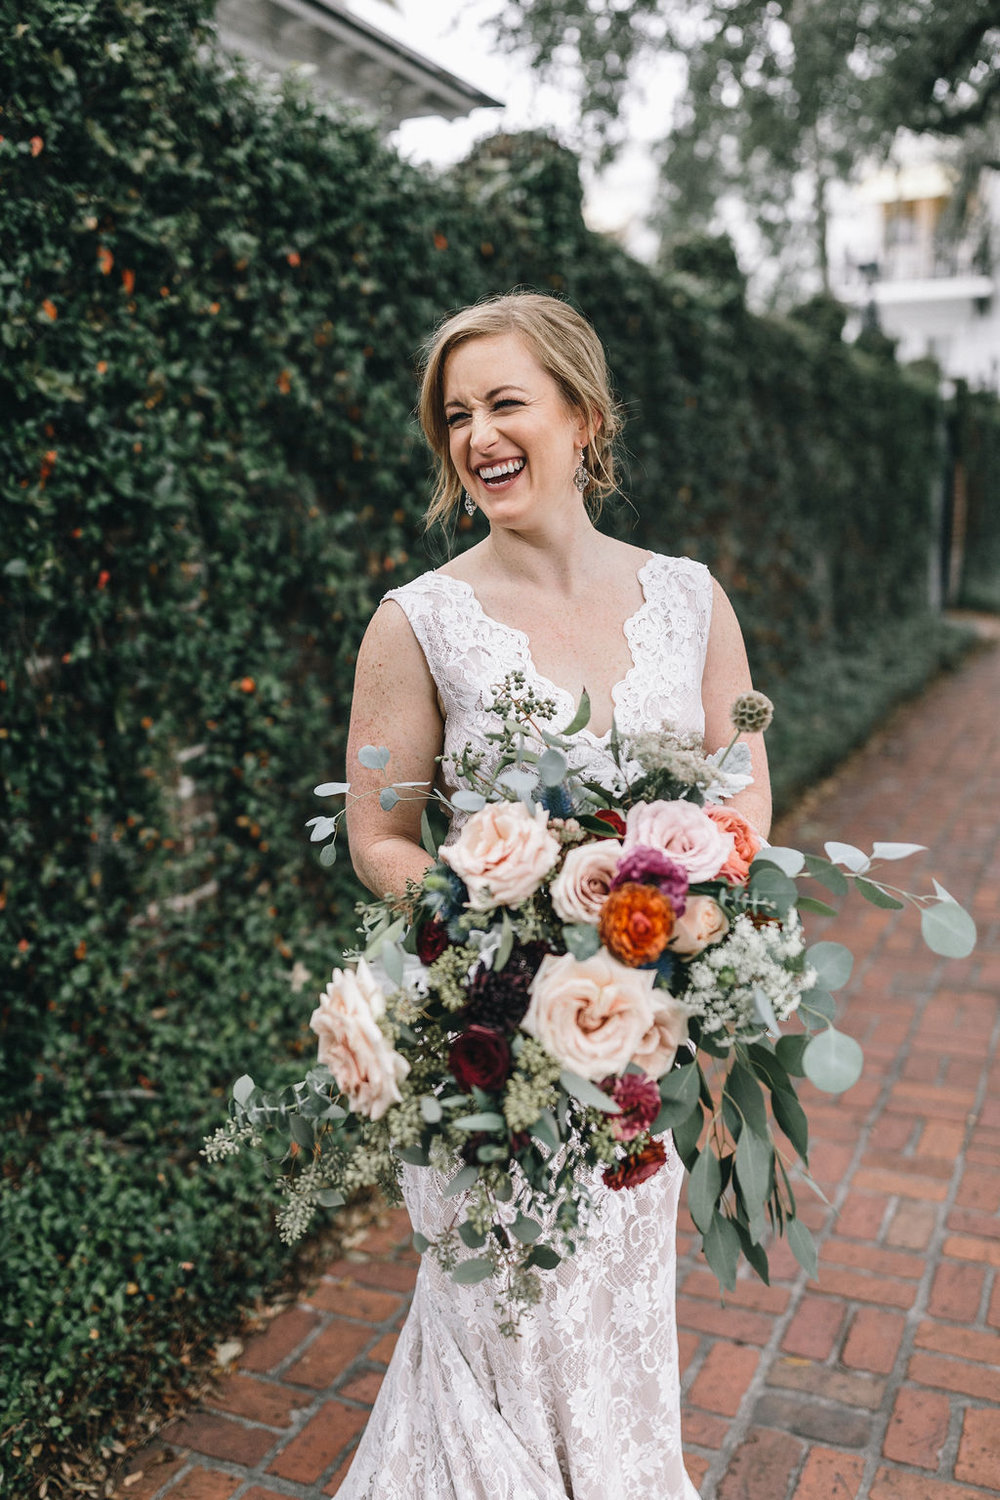 ivory_and_beau_savannah_bridal_shop_ivory_and_beau_couple_regan_and_brian_mackensey_alexander_photography_charles_h_morris_center_wedding_savannah_wedding_planner_savannah_florist_17.jpg